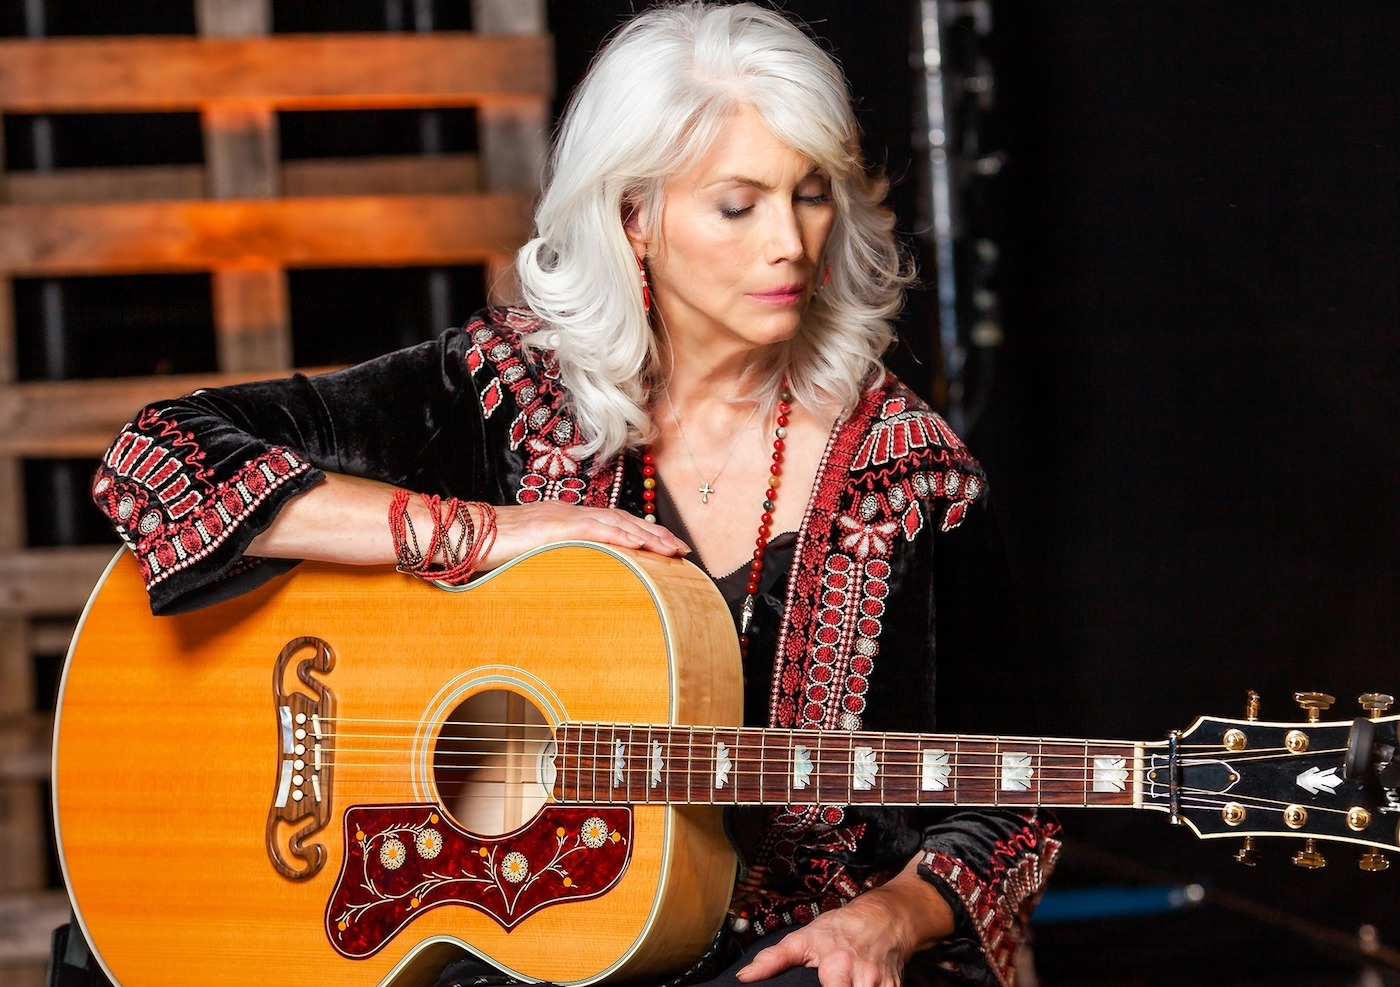 Renowned singer-songwriter Emmylou Harris and acoustic act Marisa Anderson & William Tyler were welcomed to the Red Butte Garden stage.